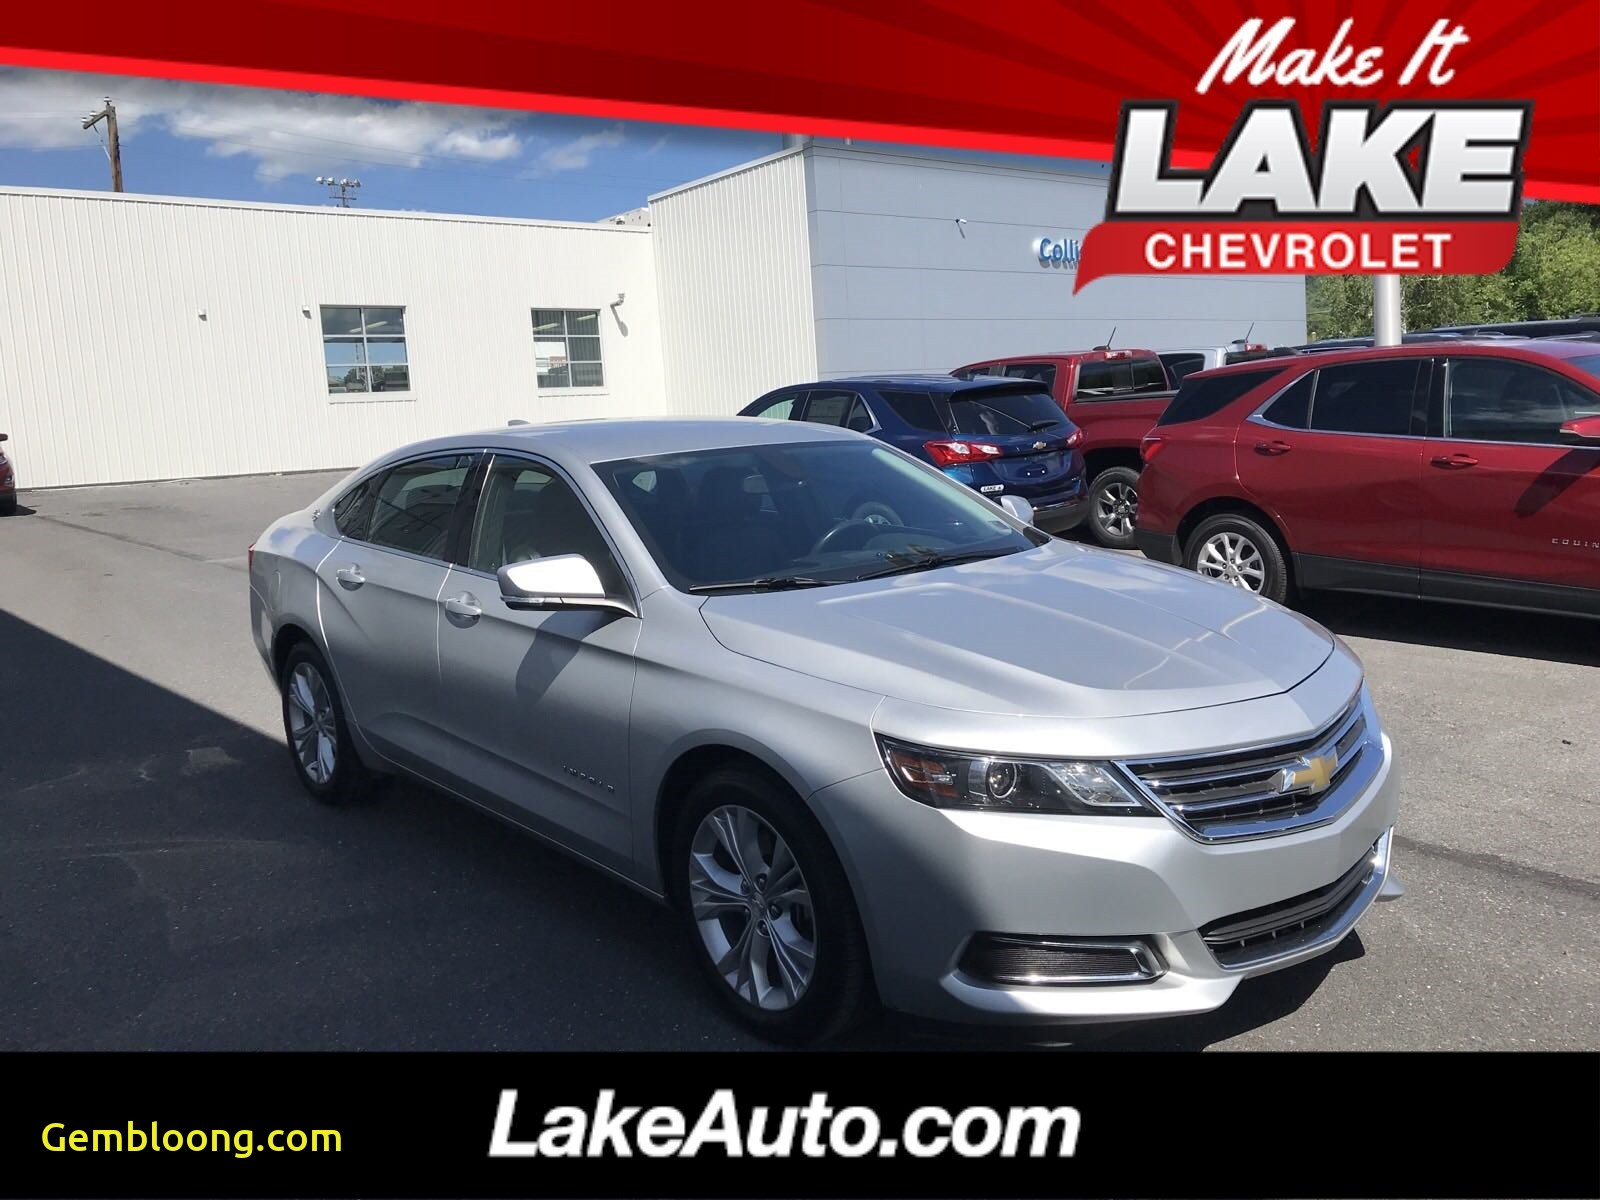 Impala Cars for Sale Near Me Lovely Used 2015 Chevrolet Impala